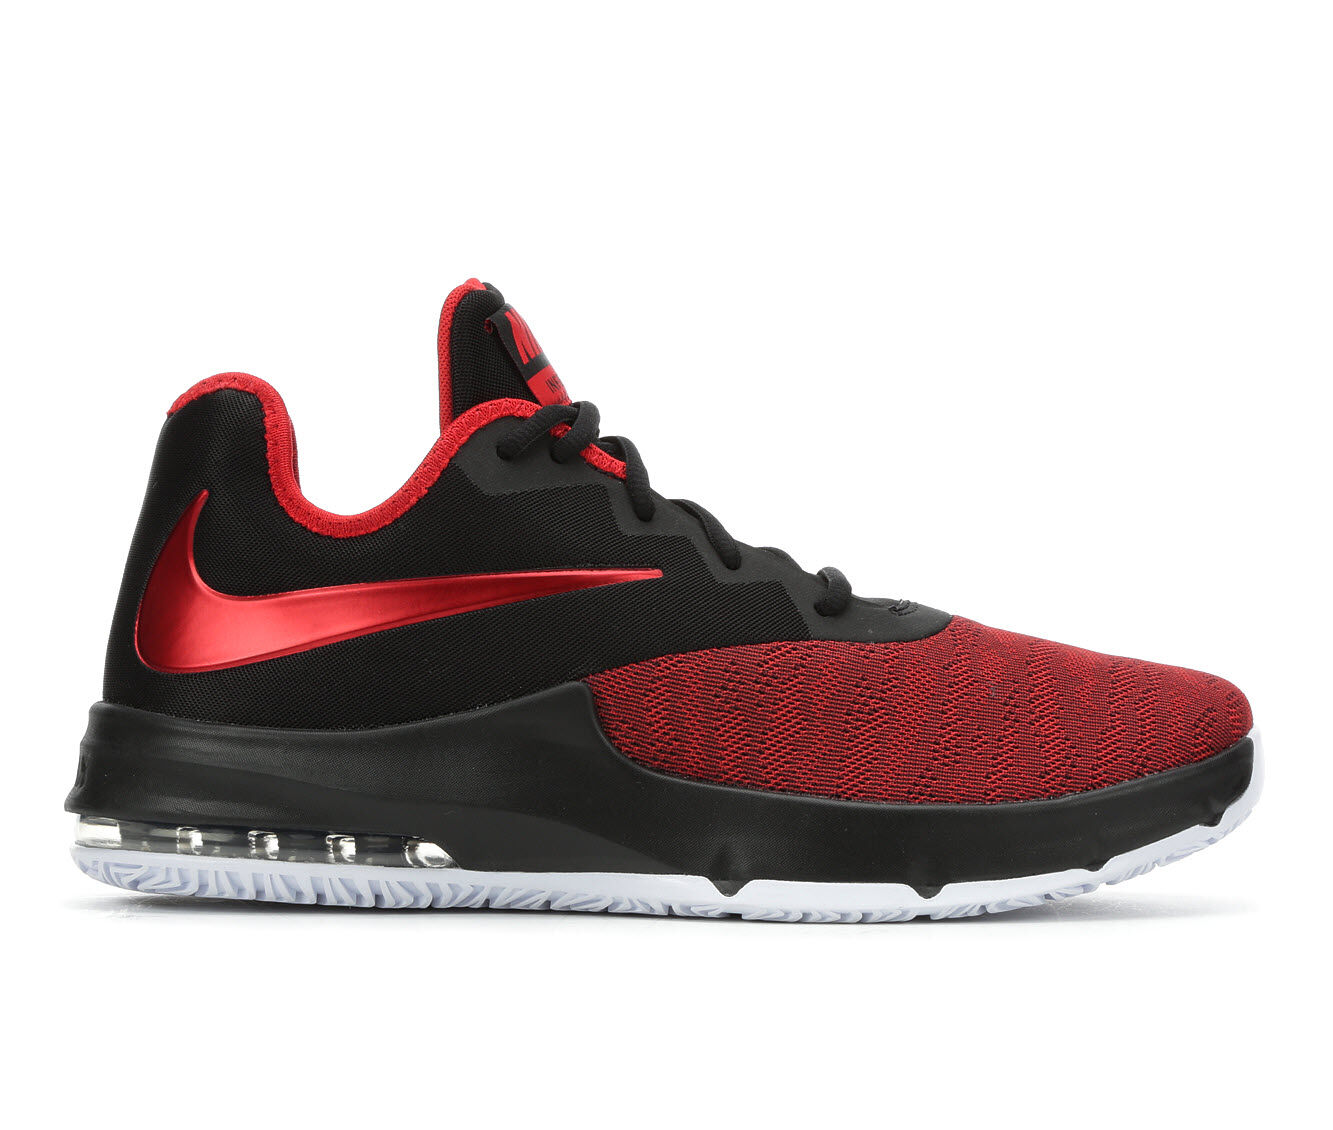 Men's Nike Air Max Infuriate III Low Basketball Shoes Red/Blk/Wht 003